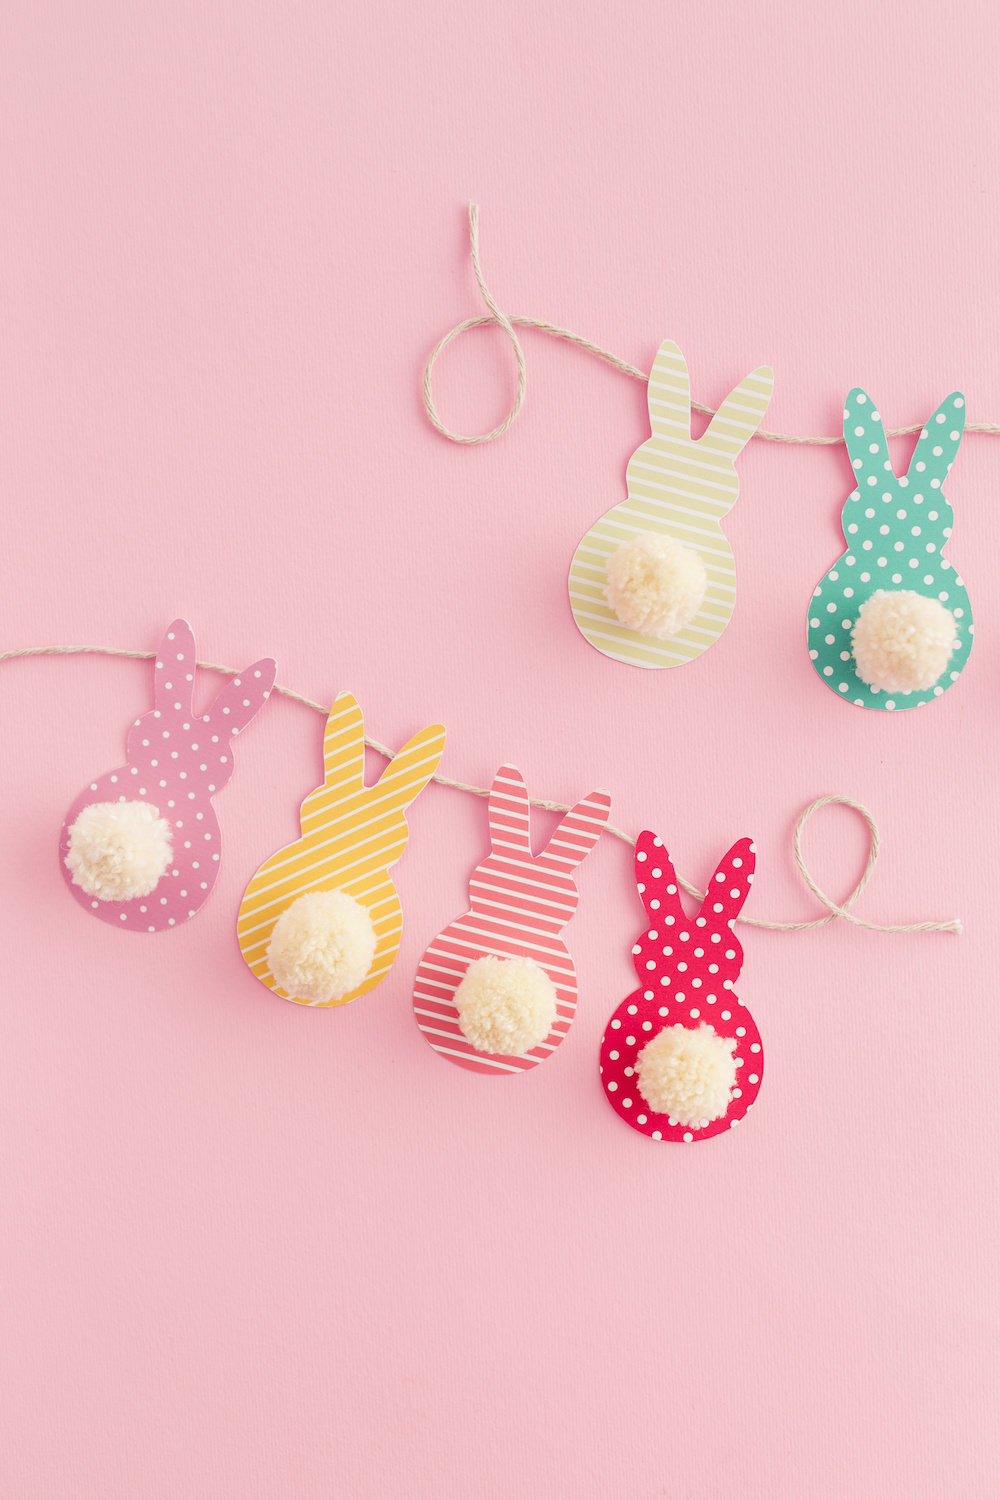 easter crafts for kids, garland made from string, and colorful patterned paper, cut in rabbit shapes, with little white cotton ball tails